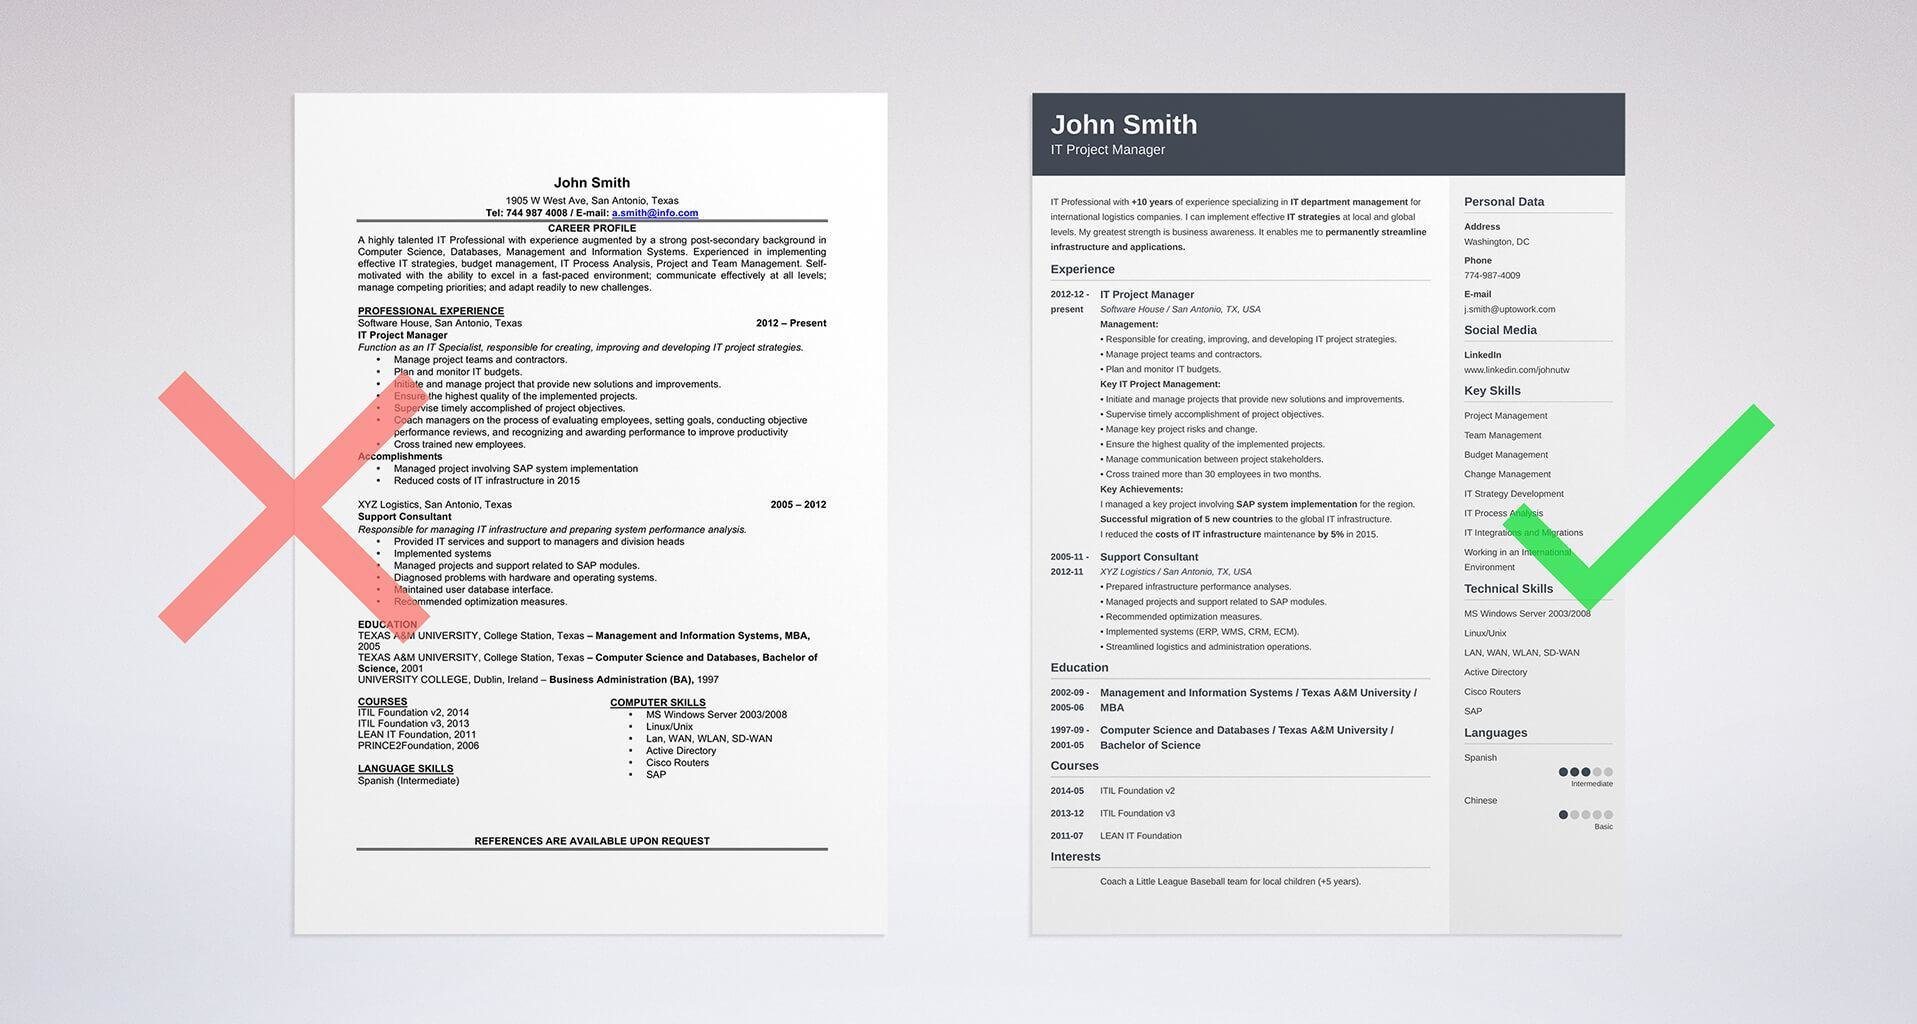 best resume format professional samples type in templates formats template structure Resume Type In Resume Templates